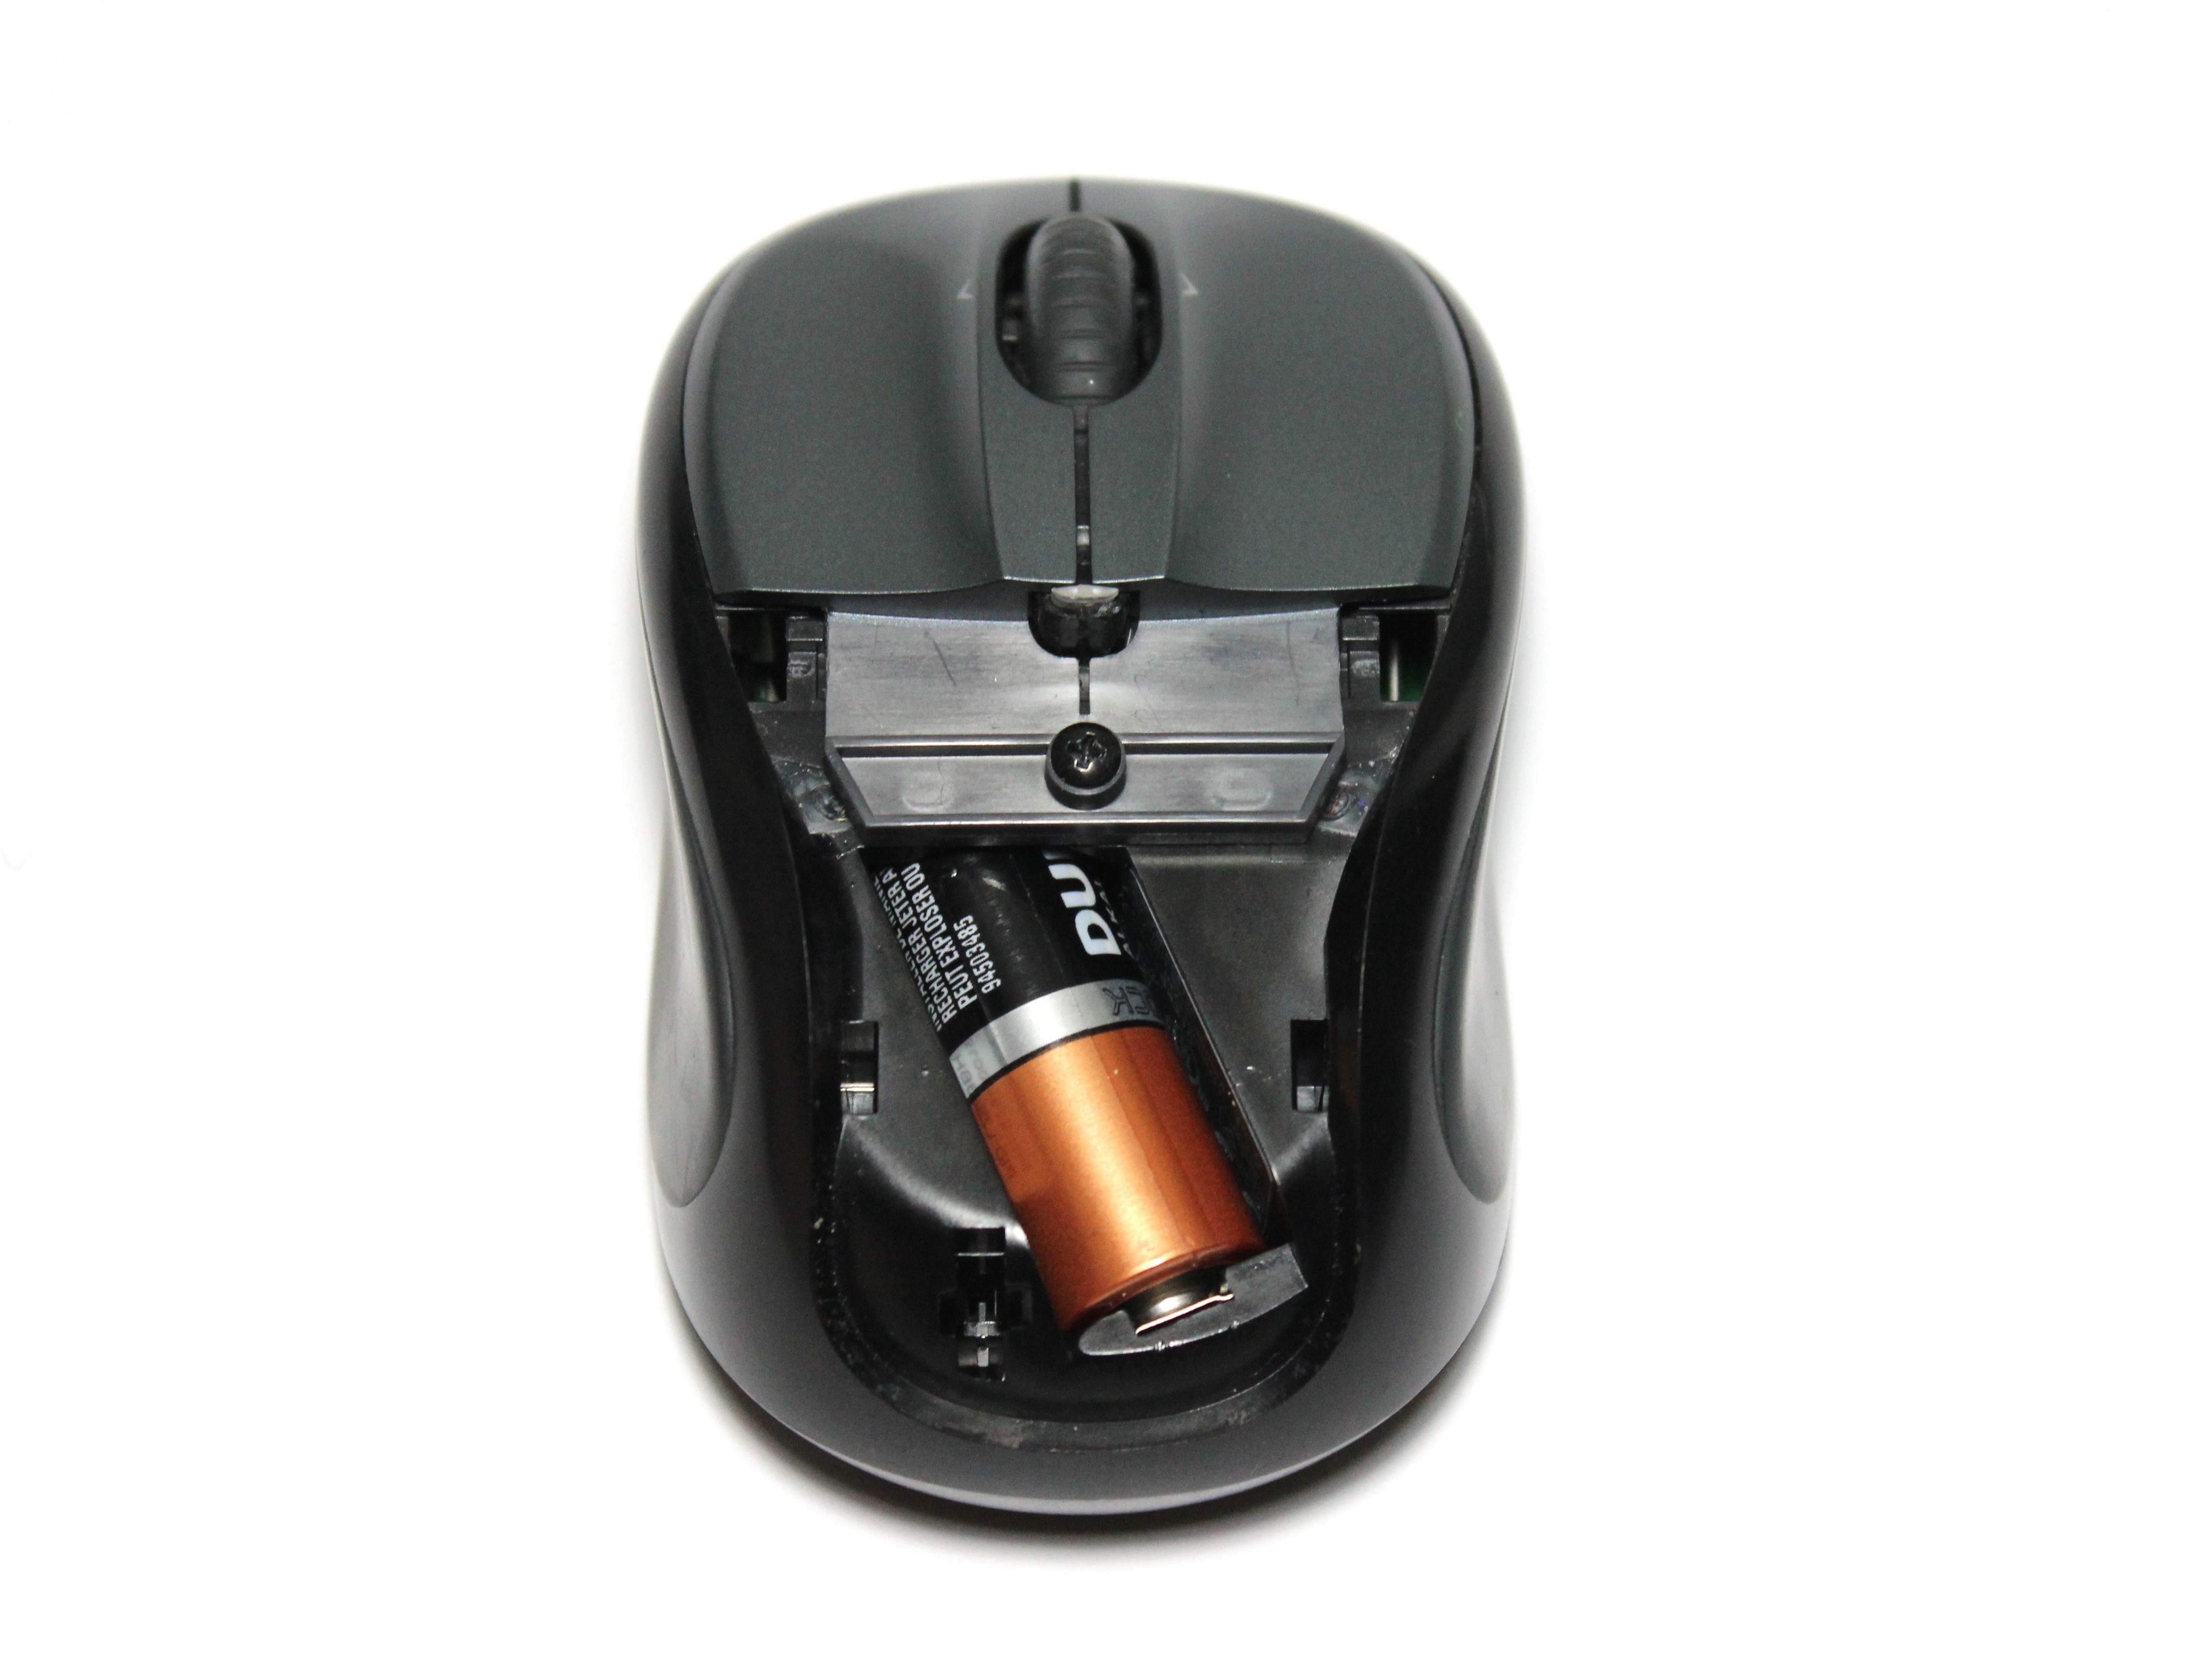 Logitech V220 - Cordless Optical Mouse Battery Replacement - iFixit Repair  Guide